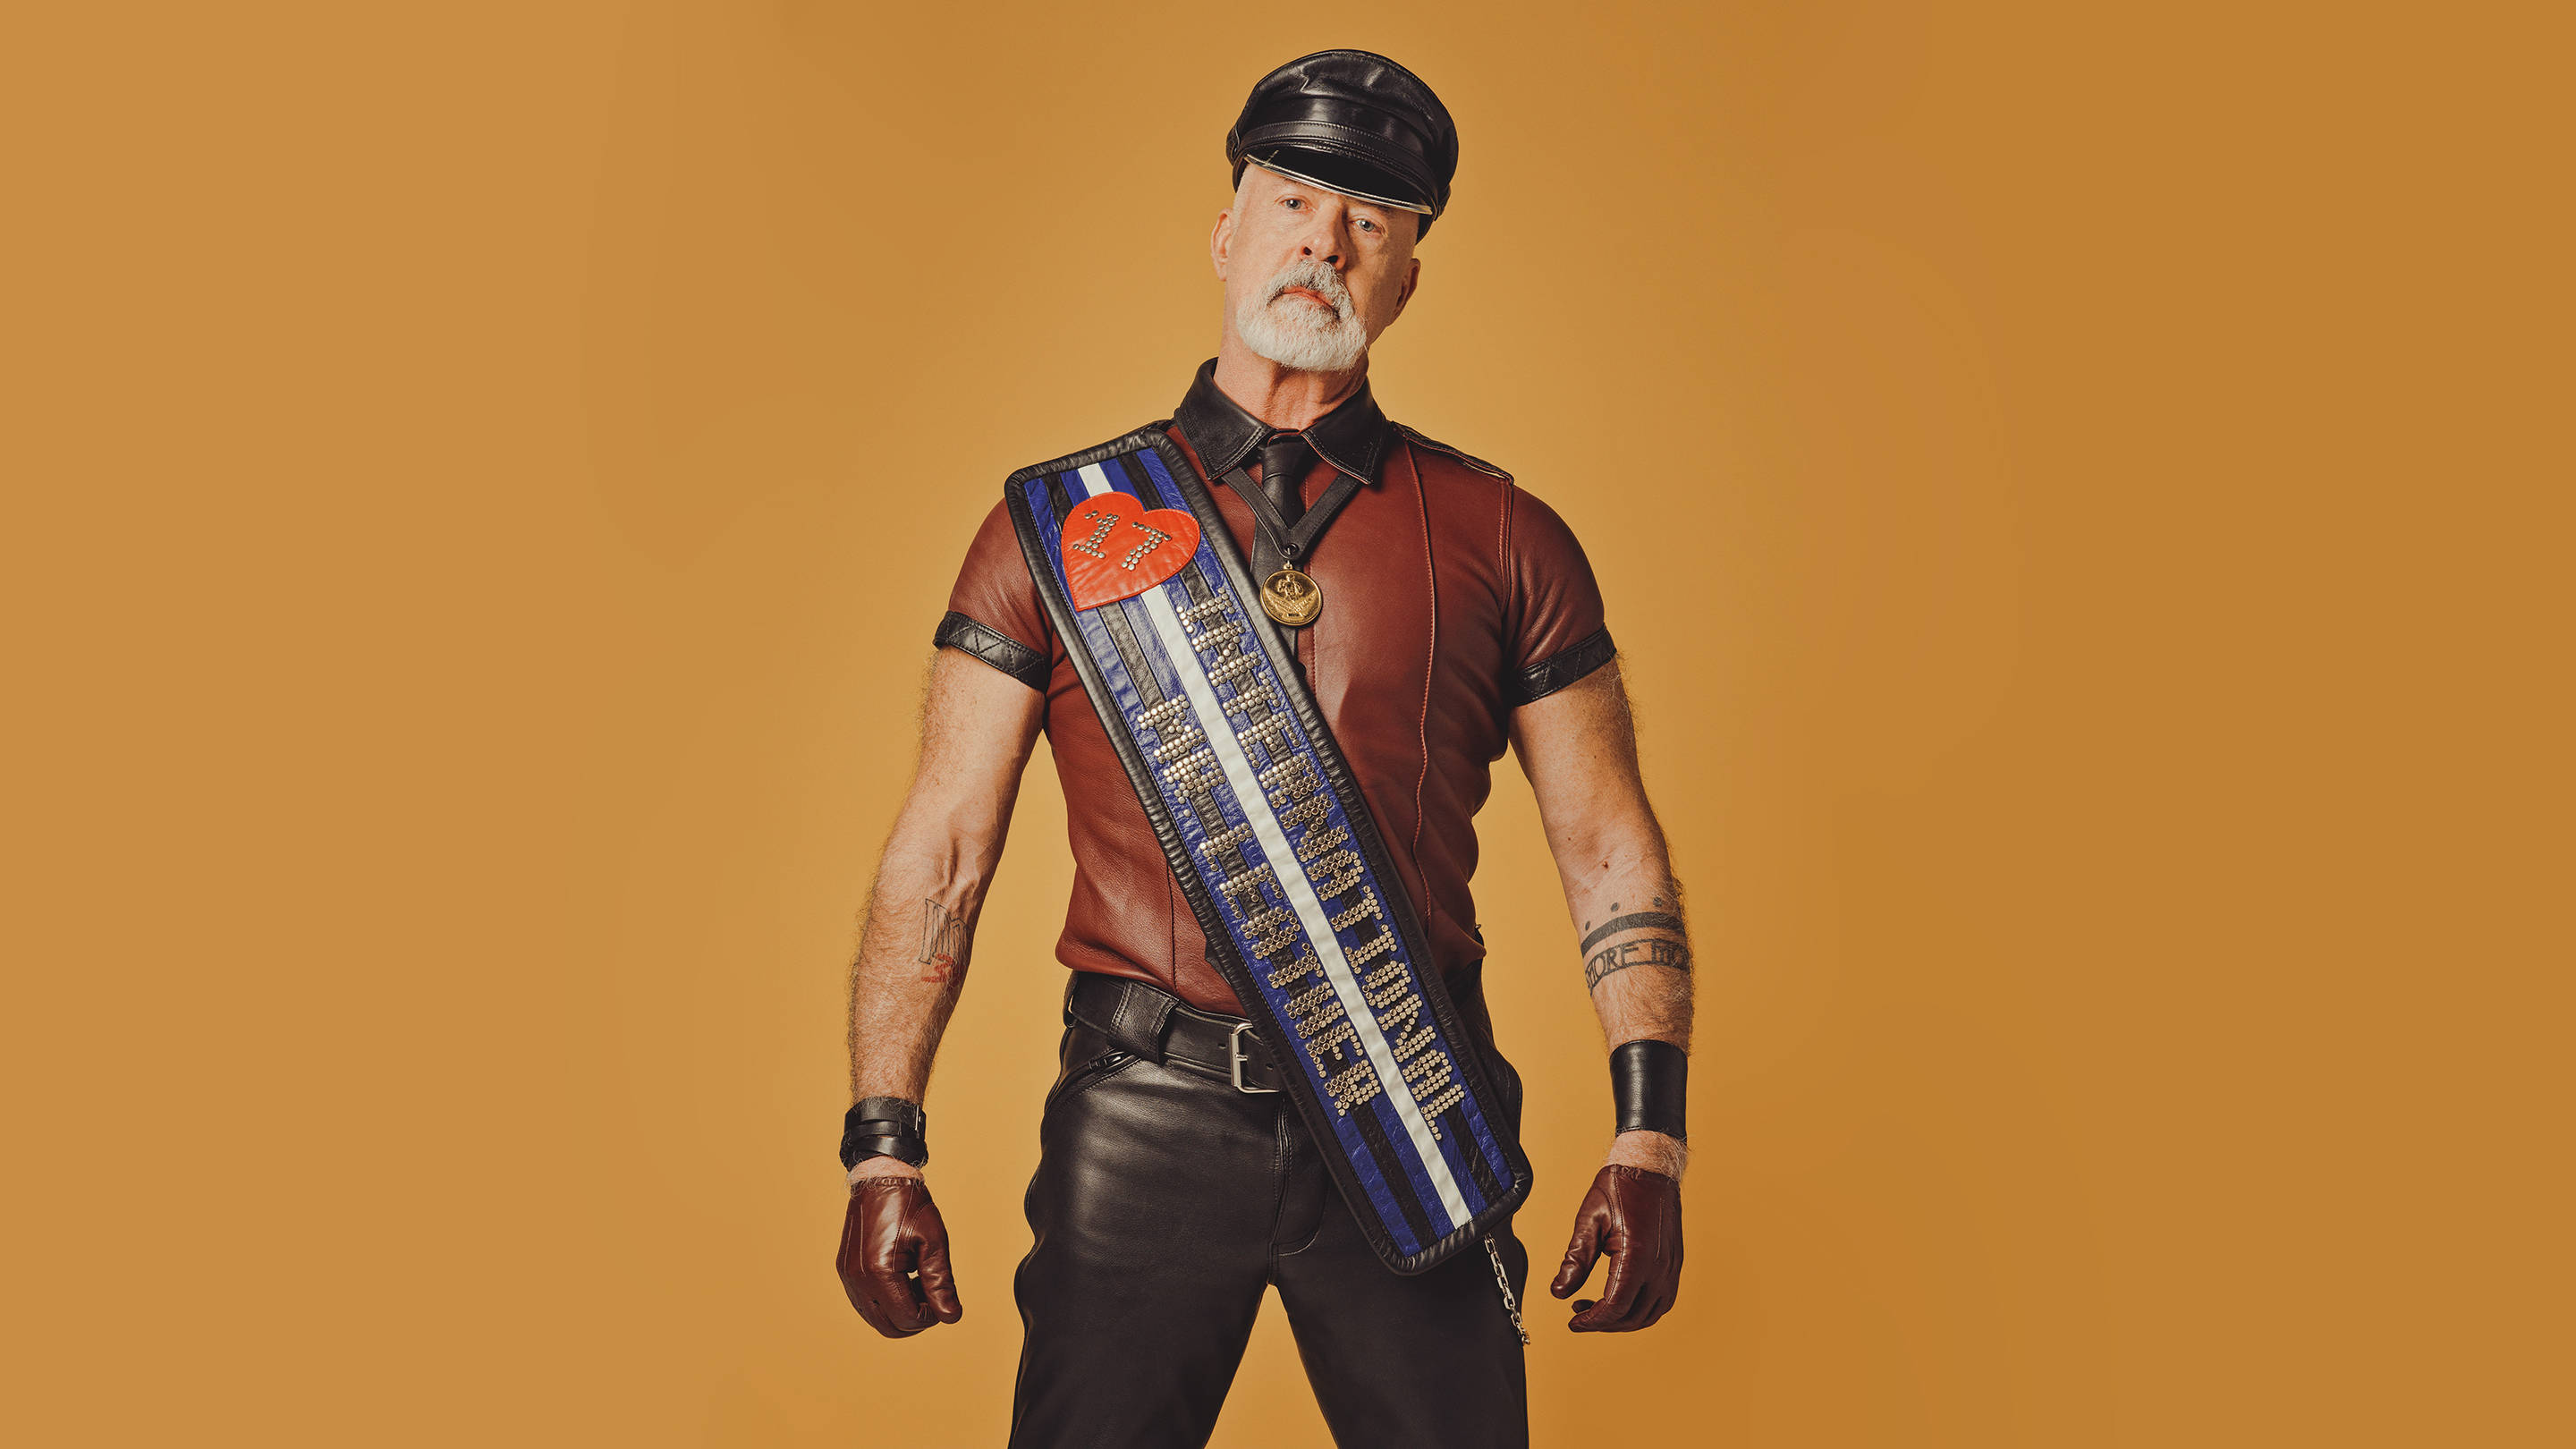 Dr. Ralph Bruneau, the Mr. IML 2017 title-holder, shot for Playboy.